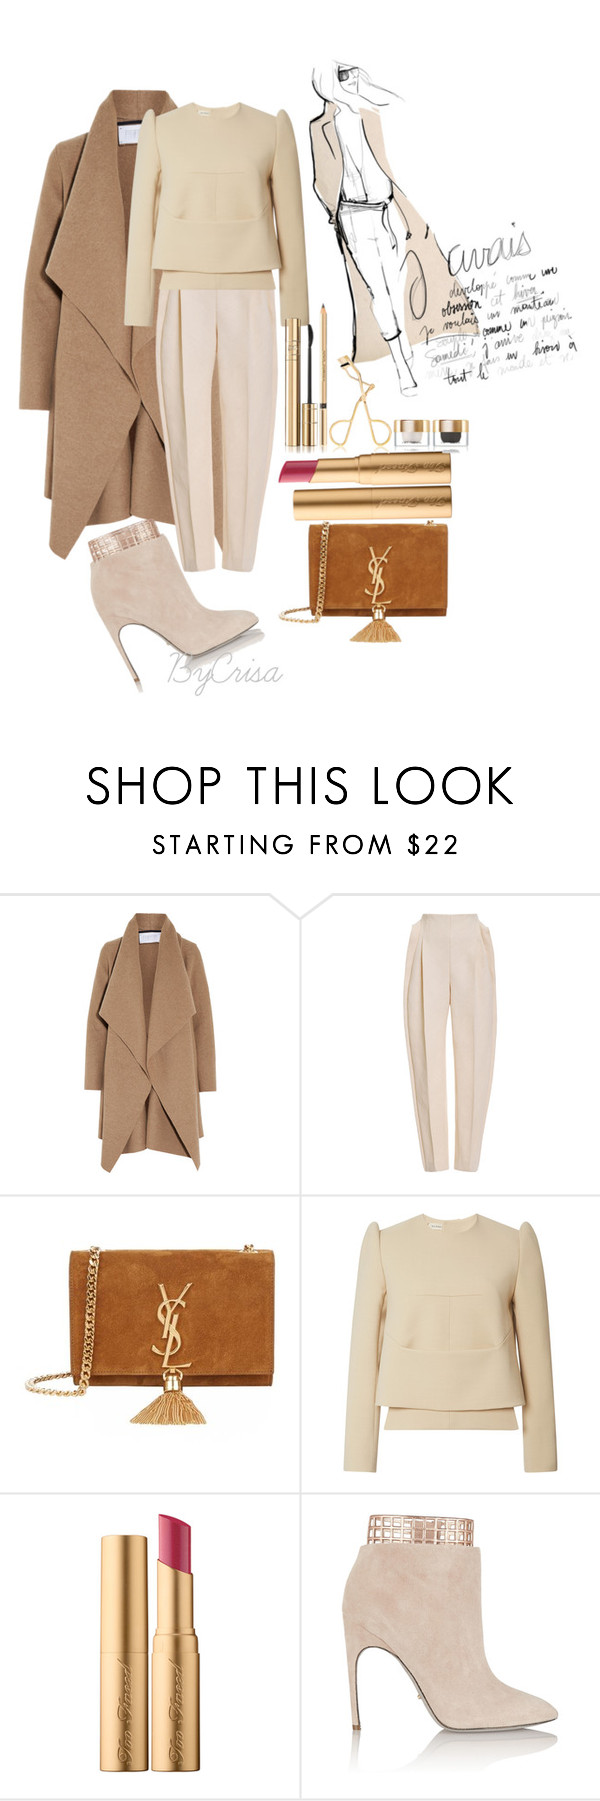 """Untitled #561"" by crisa-gloria-eduardo ❤ liked on Polyvore featuring Harris Wharf London, Delpozo, Garance Doré, Yves Saint Laurent, Too Faced Cosmetics, Sergio Rossi, Dolce&Gabbana, women's clothing, women and female"